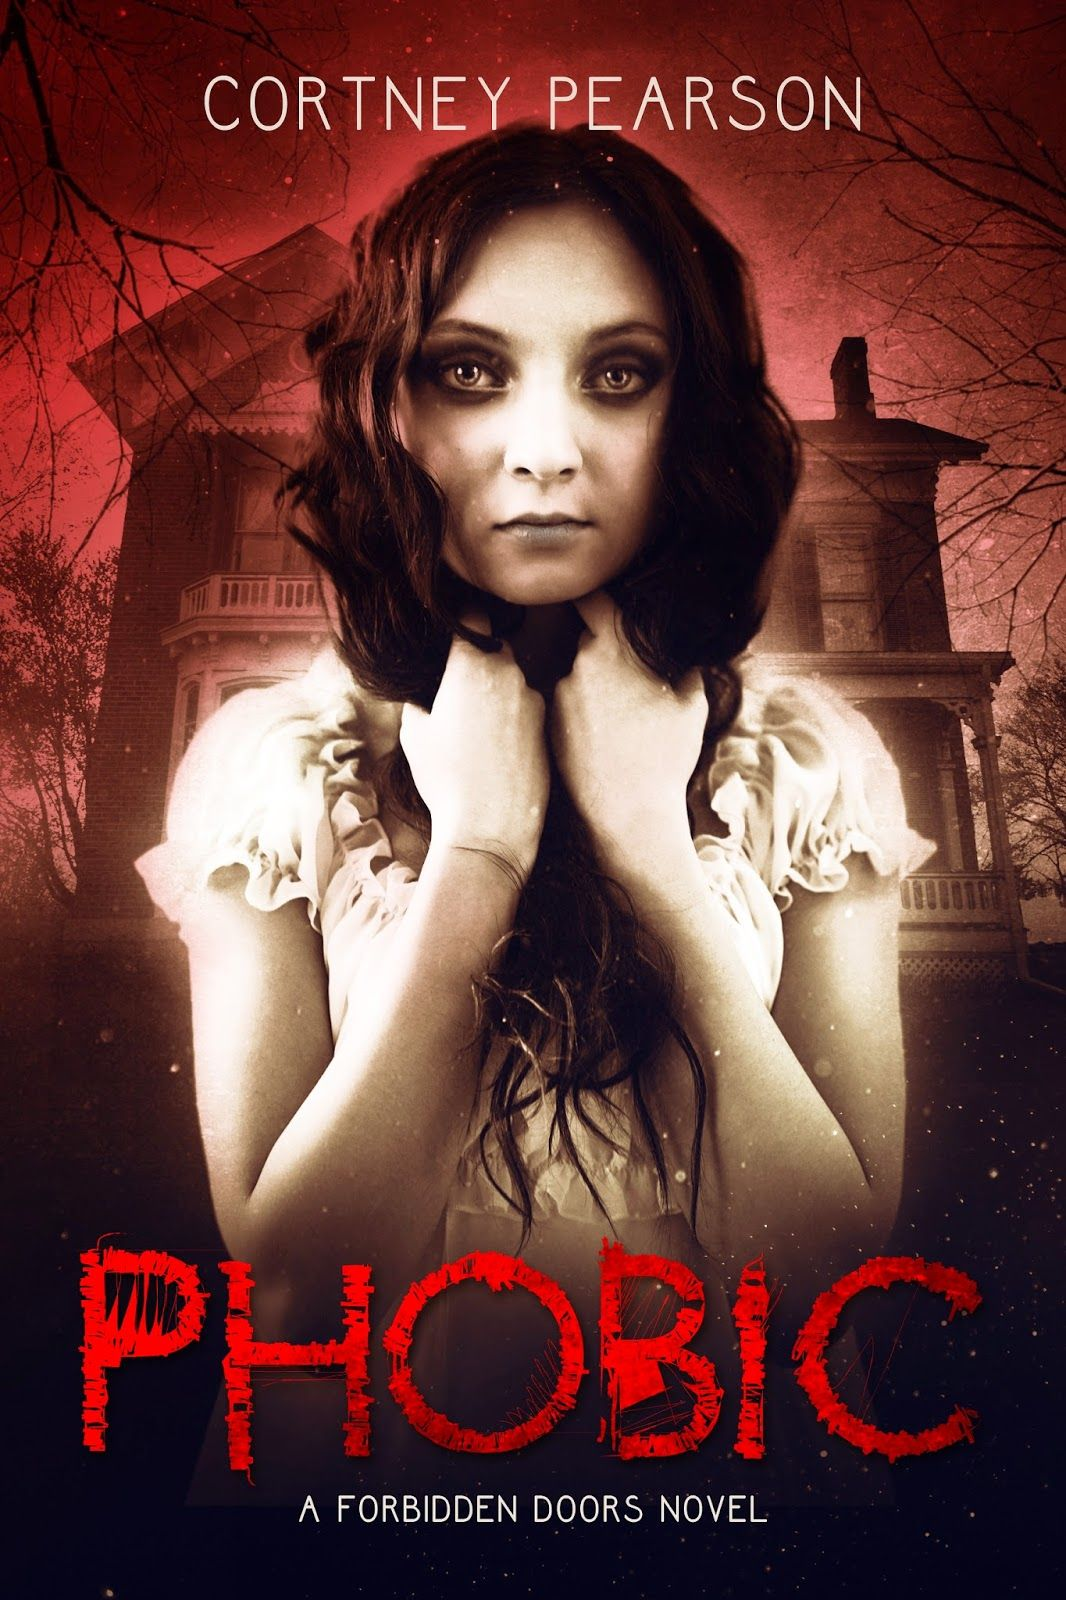 Phobic (The Forbidden Doors #1) by Cortney Pearson | Publication date Sept. 8th 2014 #YAhorror